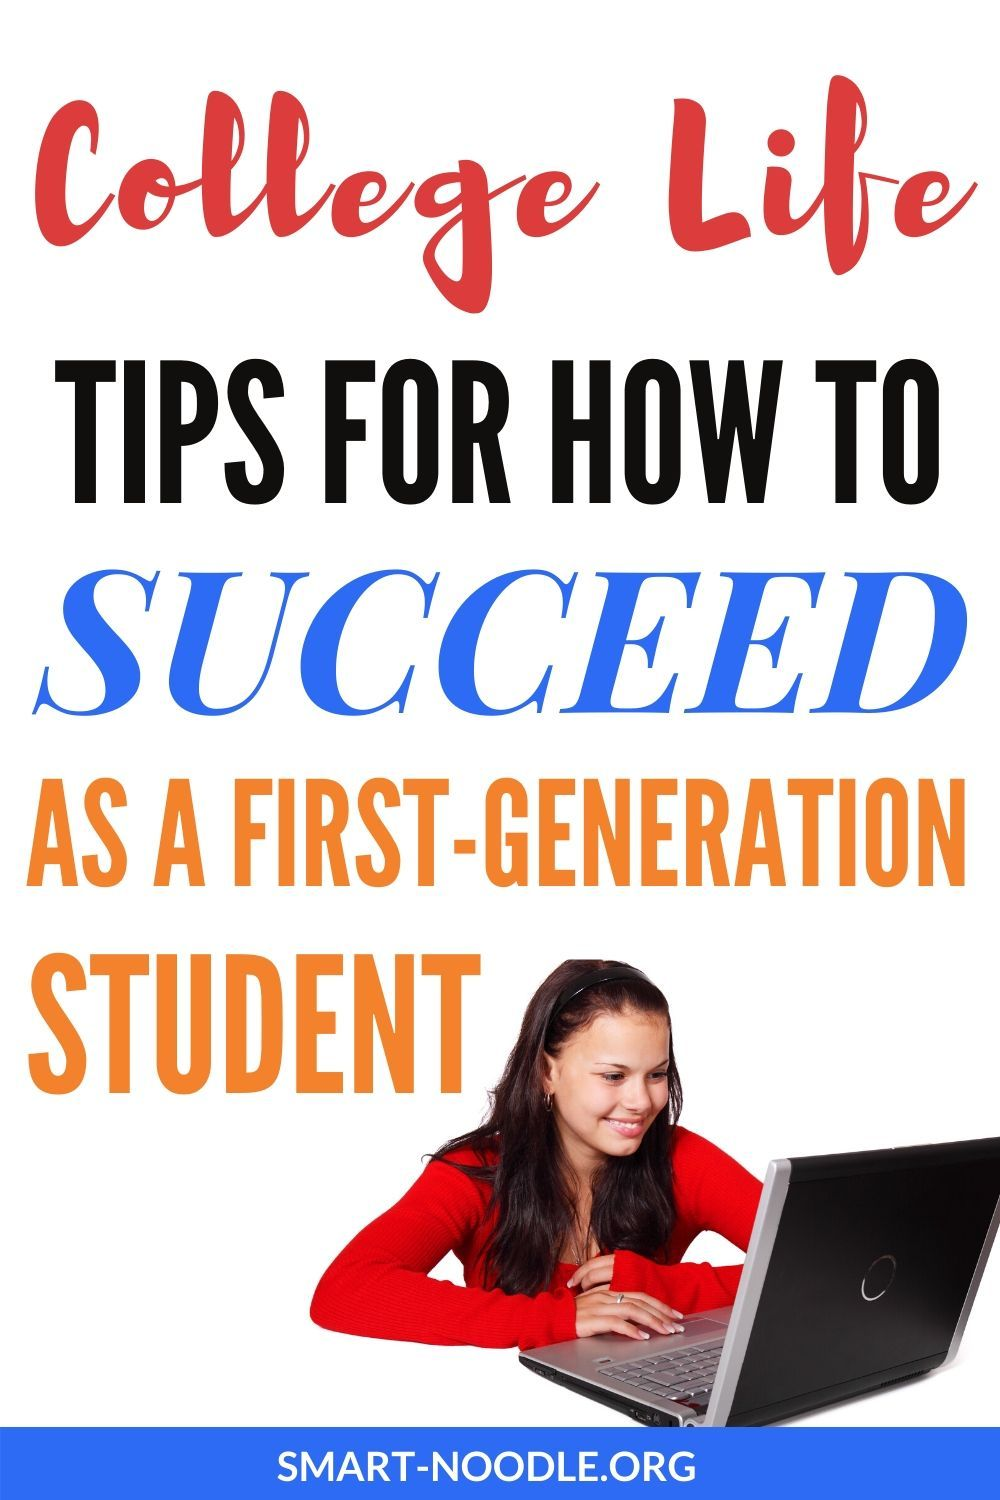 College Life Tips for How to Succeed as a First-Generation Student – Smart-Noodle Blogs